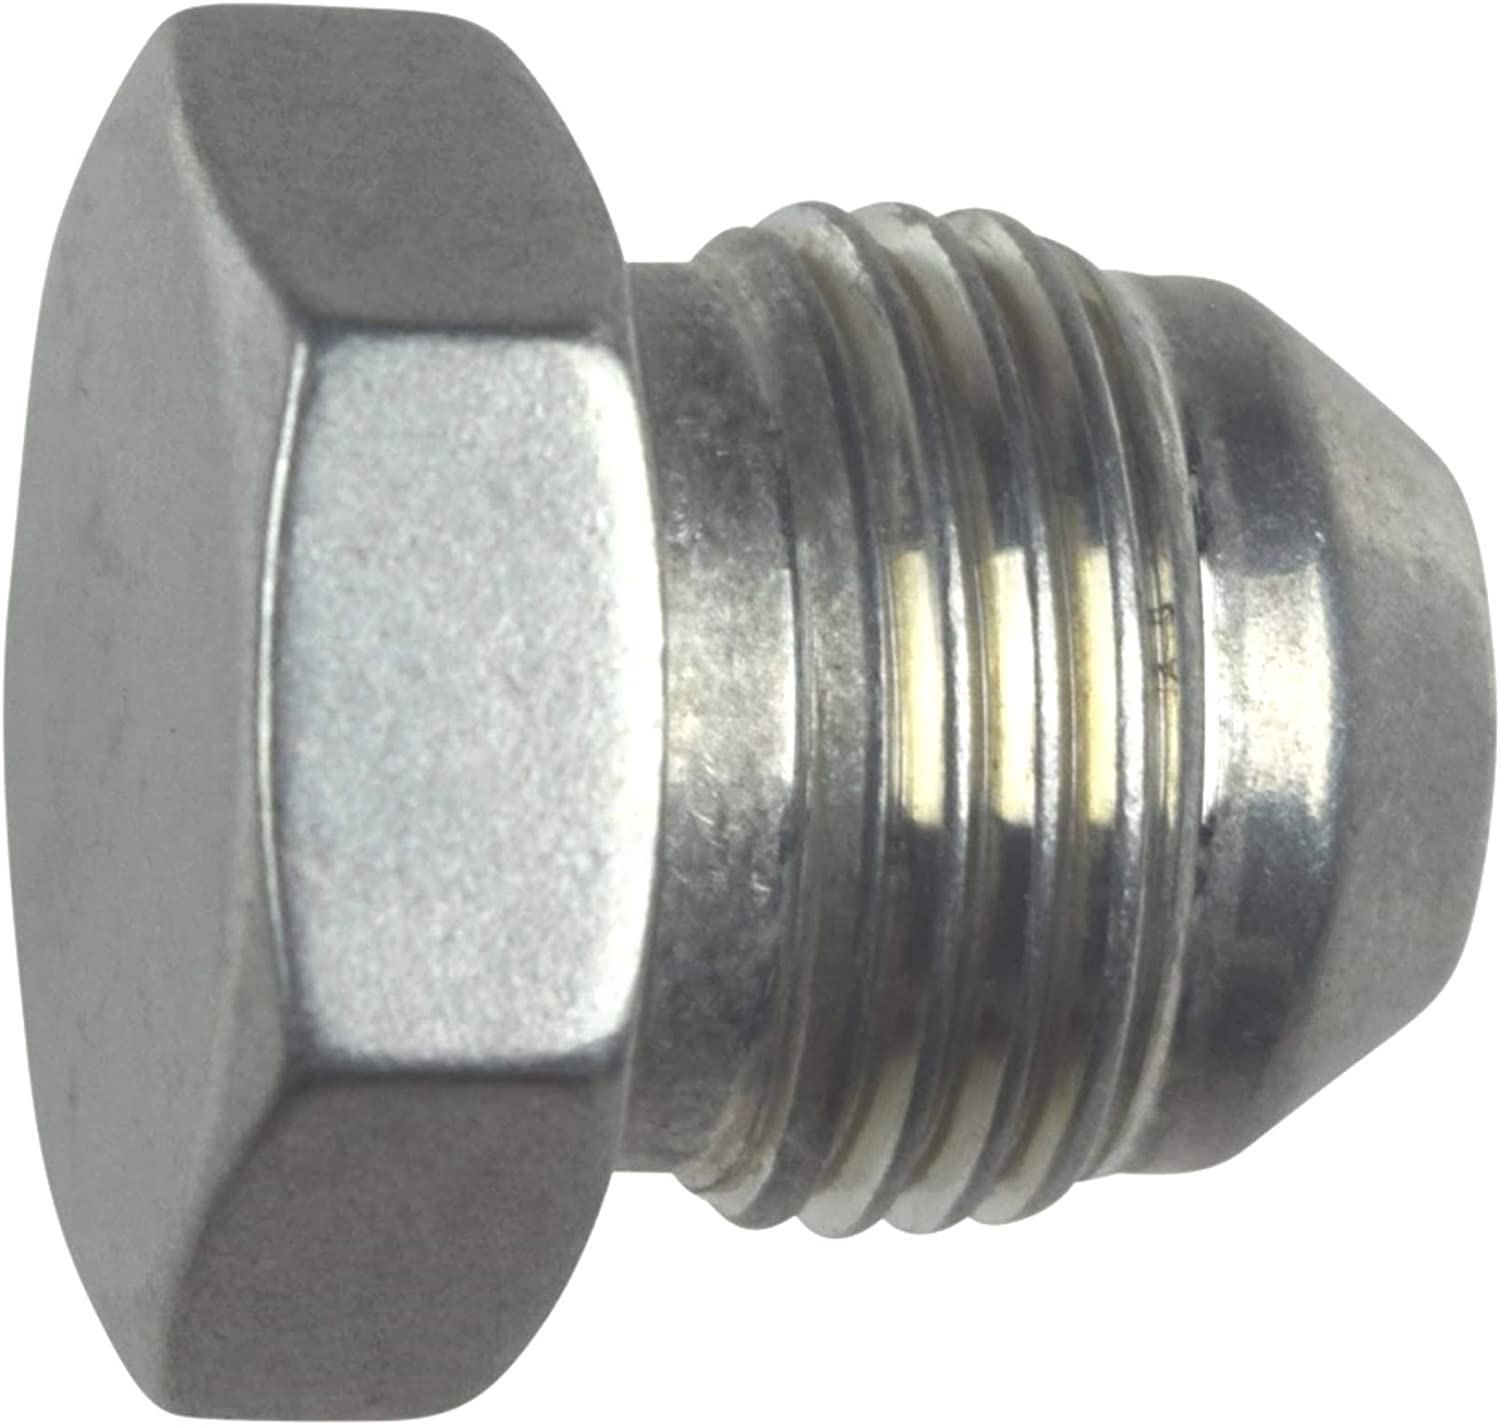 8AN Flare Plug Male Nut 8 AN Block Off Cap Fitting Bare AN806-08A